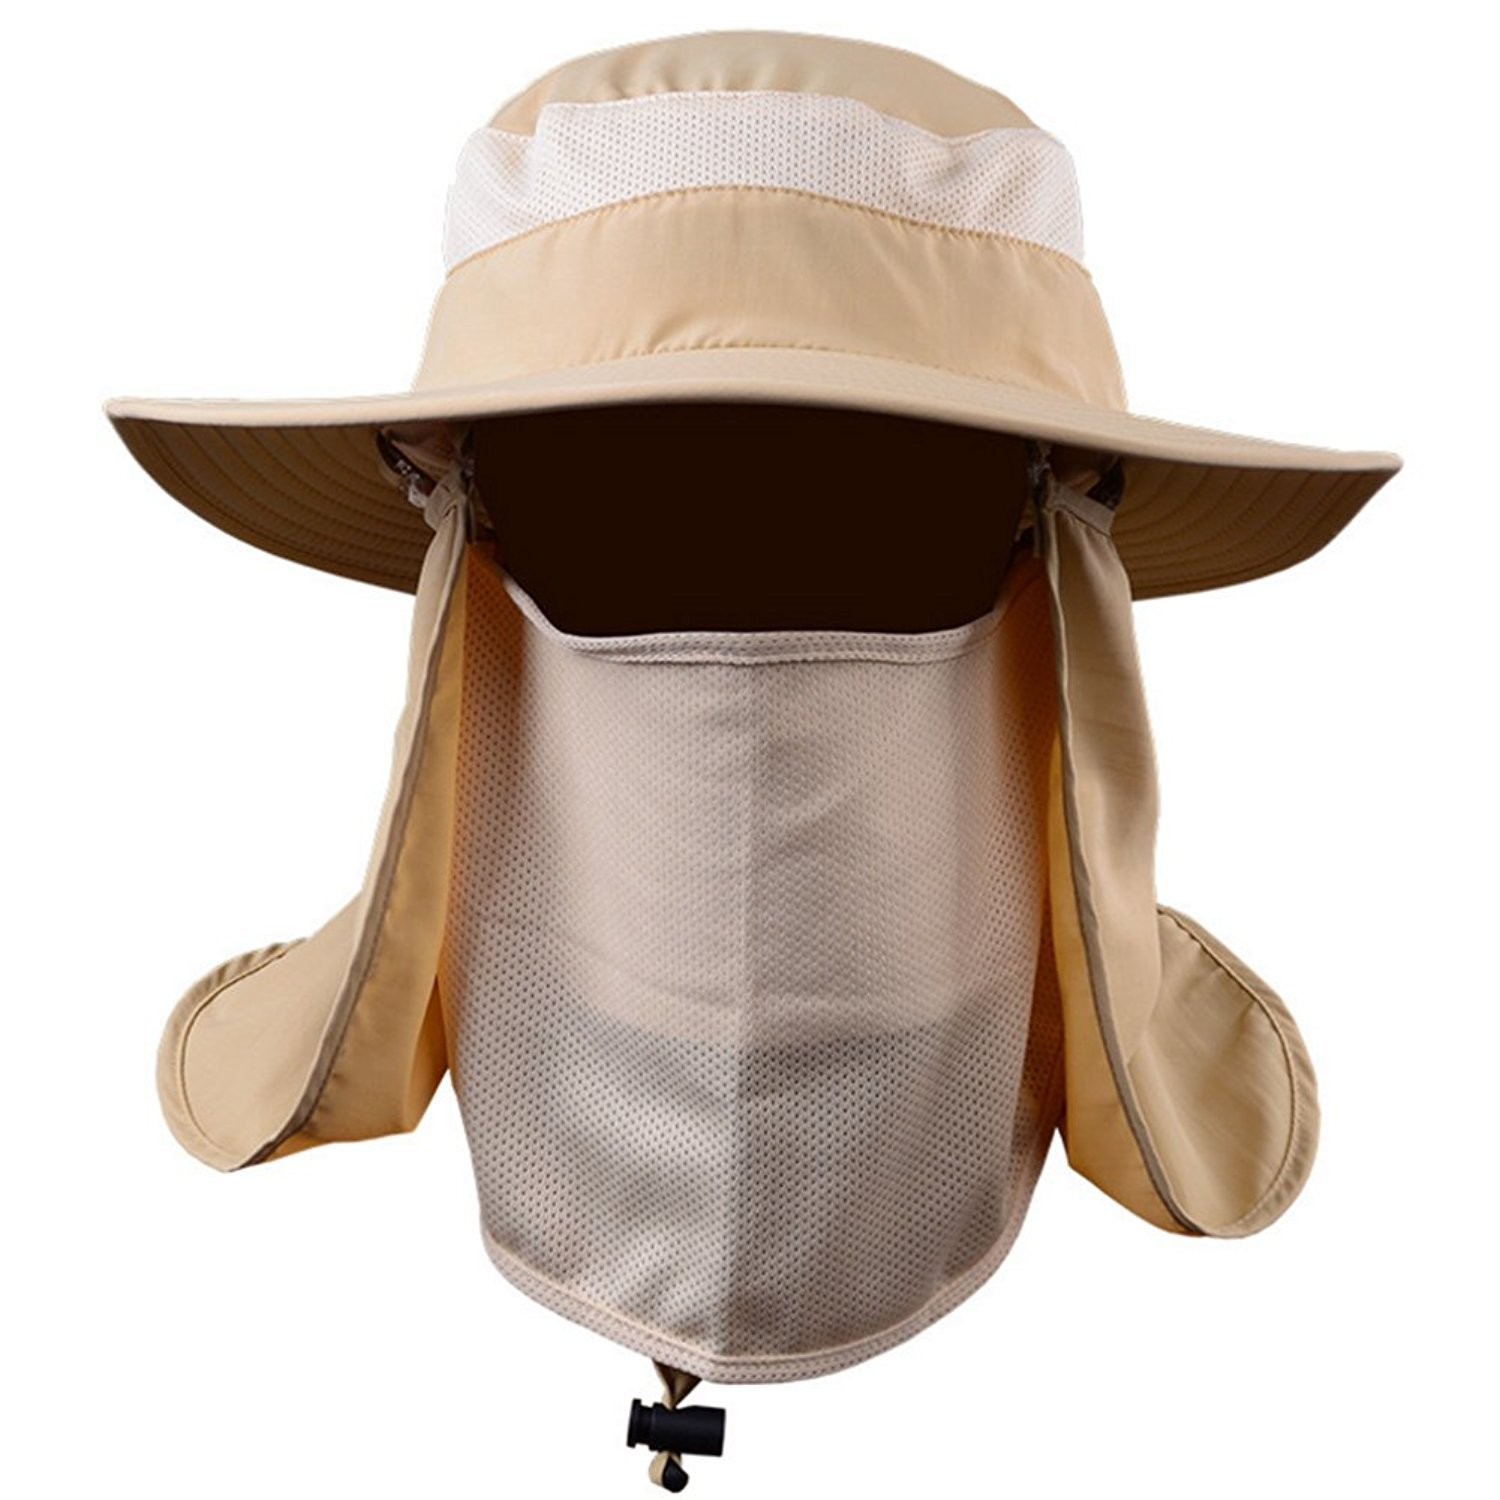 4d0afedd Mens Outdoor Legionnaire Hat Camping Fishing Hunting Fully Sun Protection  Hat Cap with Flap Neck Protector Detachable Mesh Mouth Mask UPF 50+ Anti-UV  Summer ...